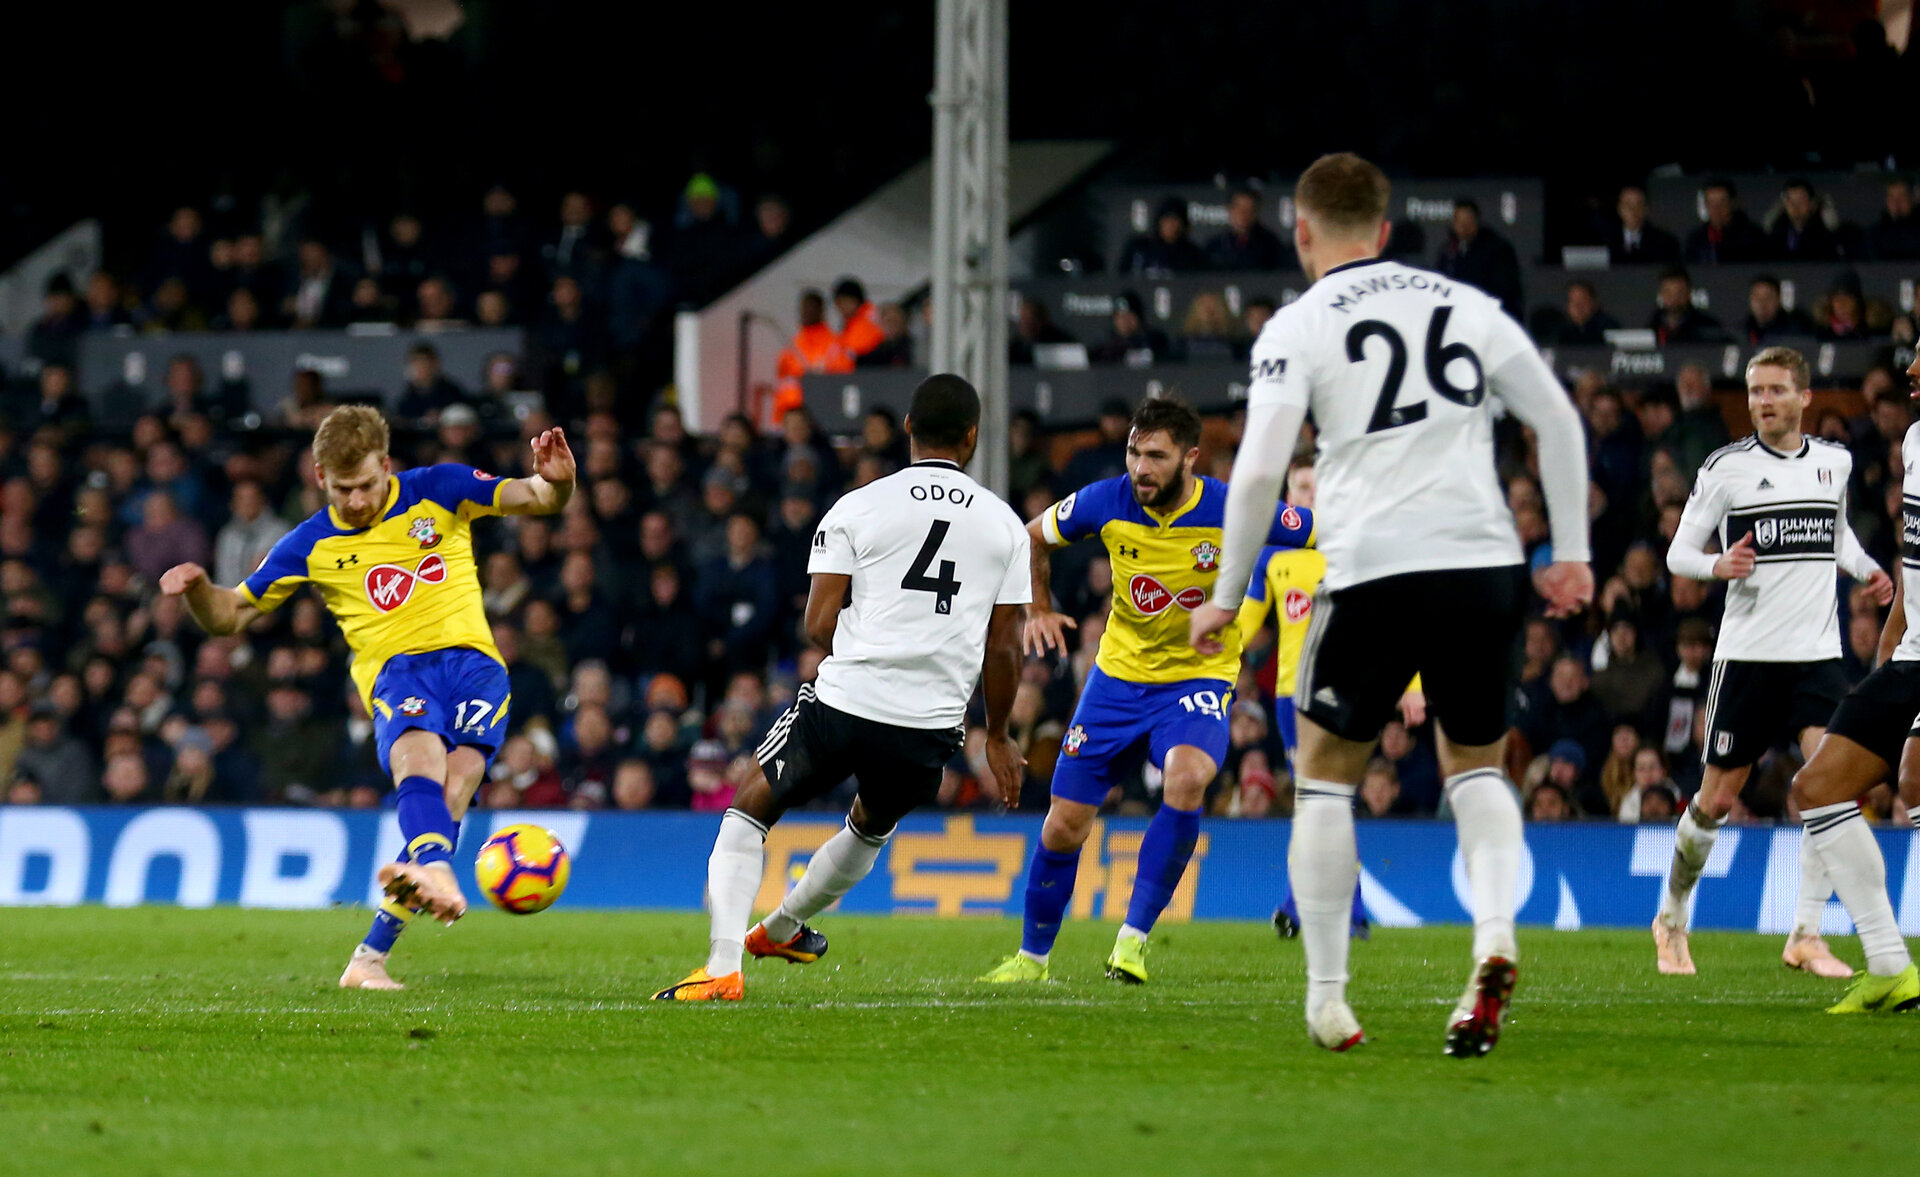 LONDON, ENGLAND - NOVEMBER 24: Stuart Armstrong of Southampton scores his second during the Premier League match between Fulham FC and Southampton FC at Craven Cottage on November 24, 2018 in London, United Kingdom. (Photo by Matt Watson/Southampton FC via Getty Images)